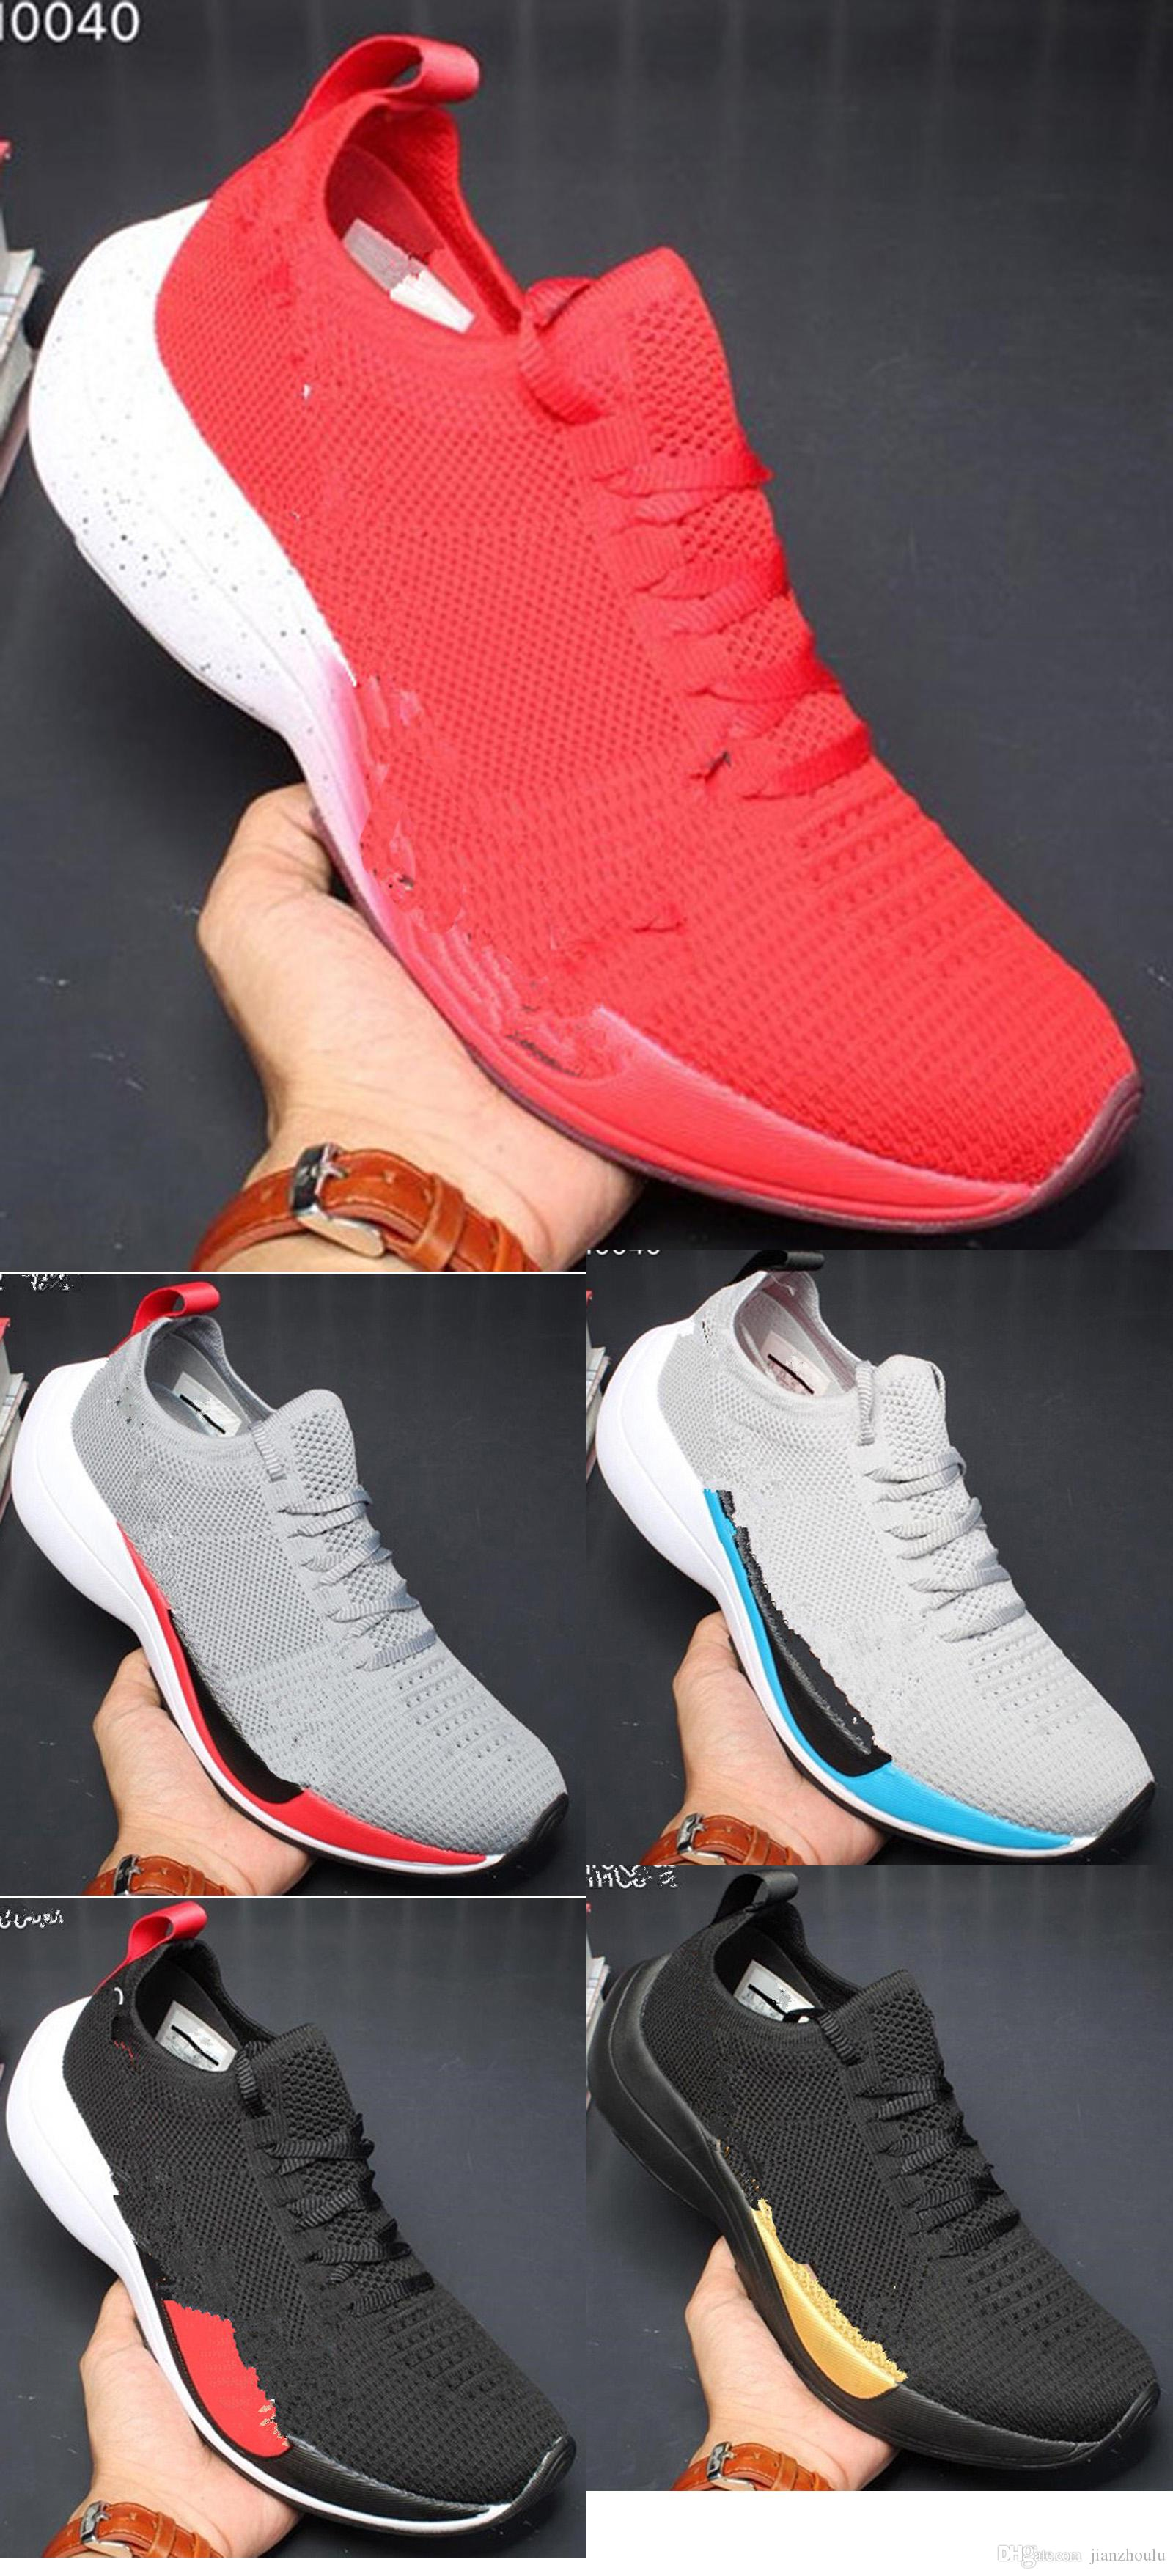 ad2128ab0e42 ... sale top zoom vaporfly elite running shoes blue black pink white men  women lightweight jogging sports